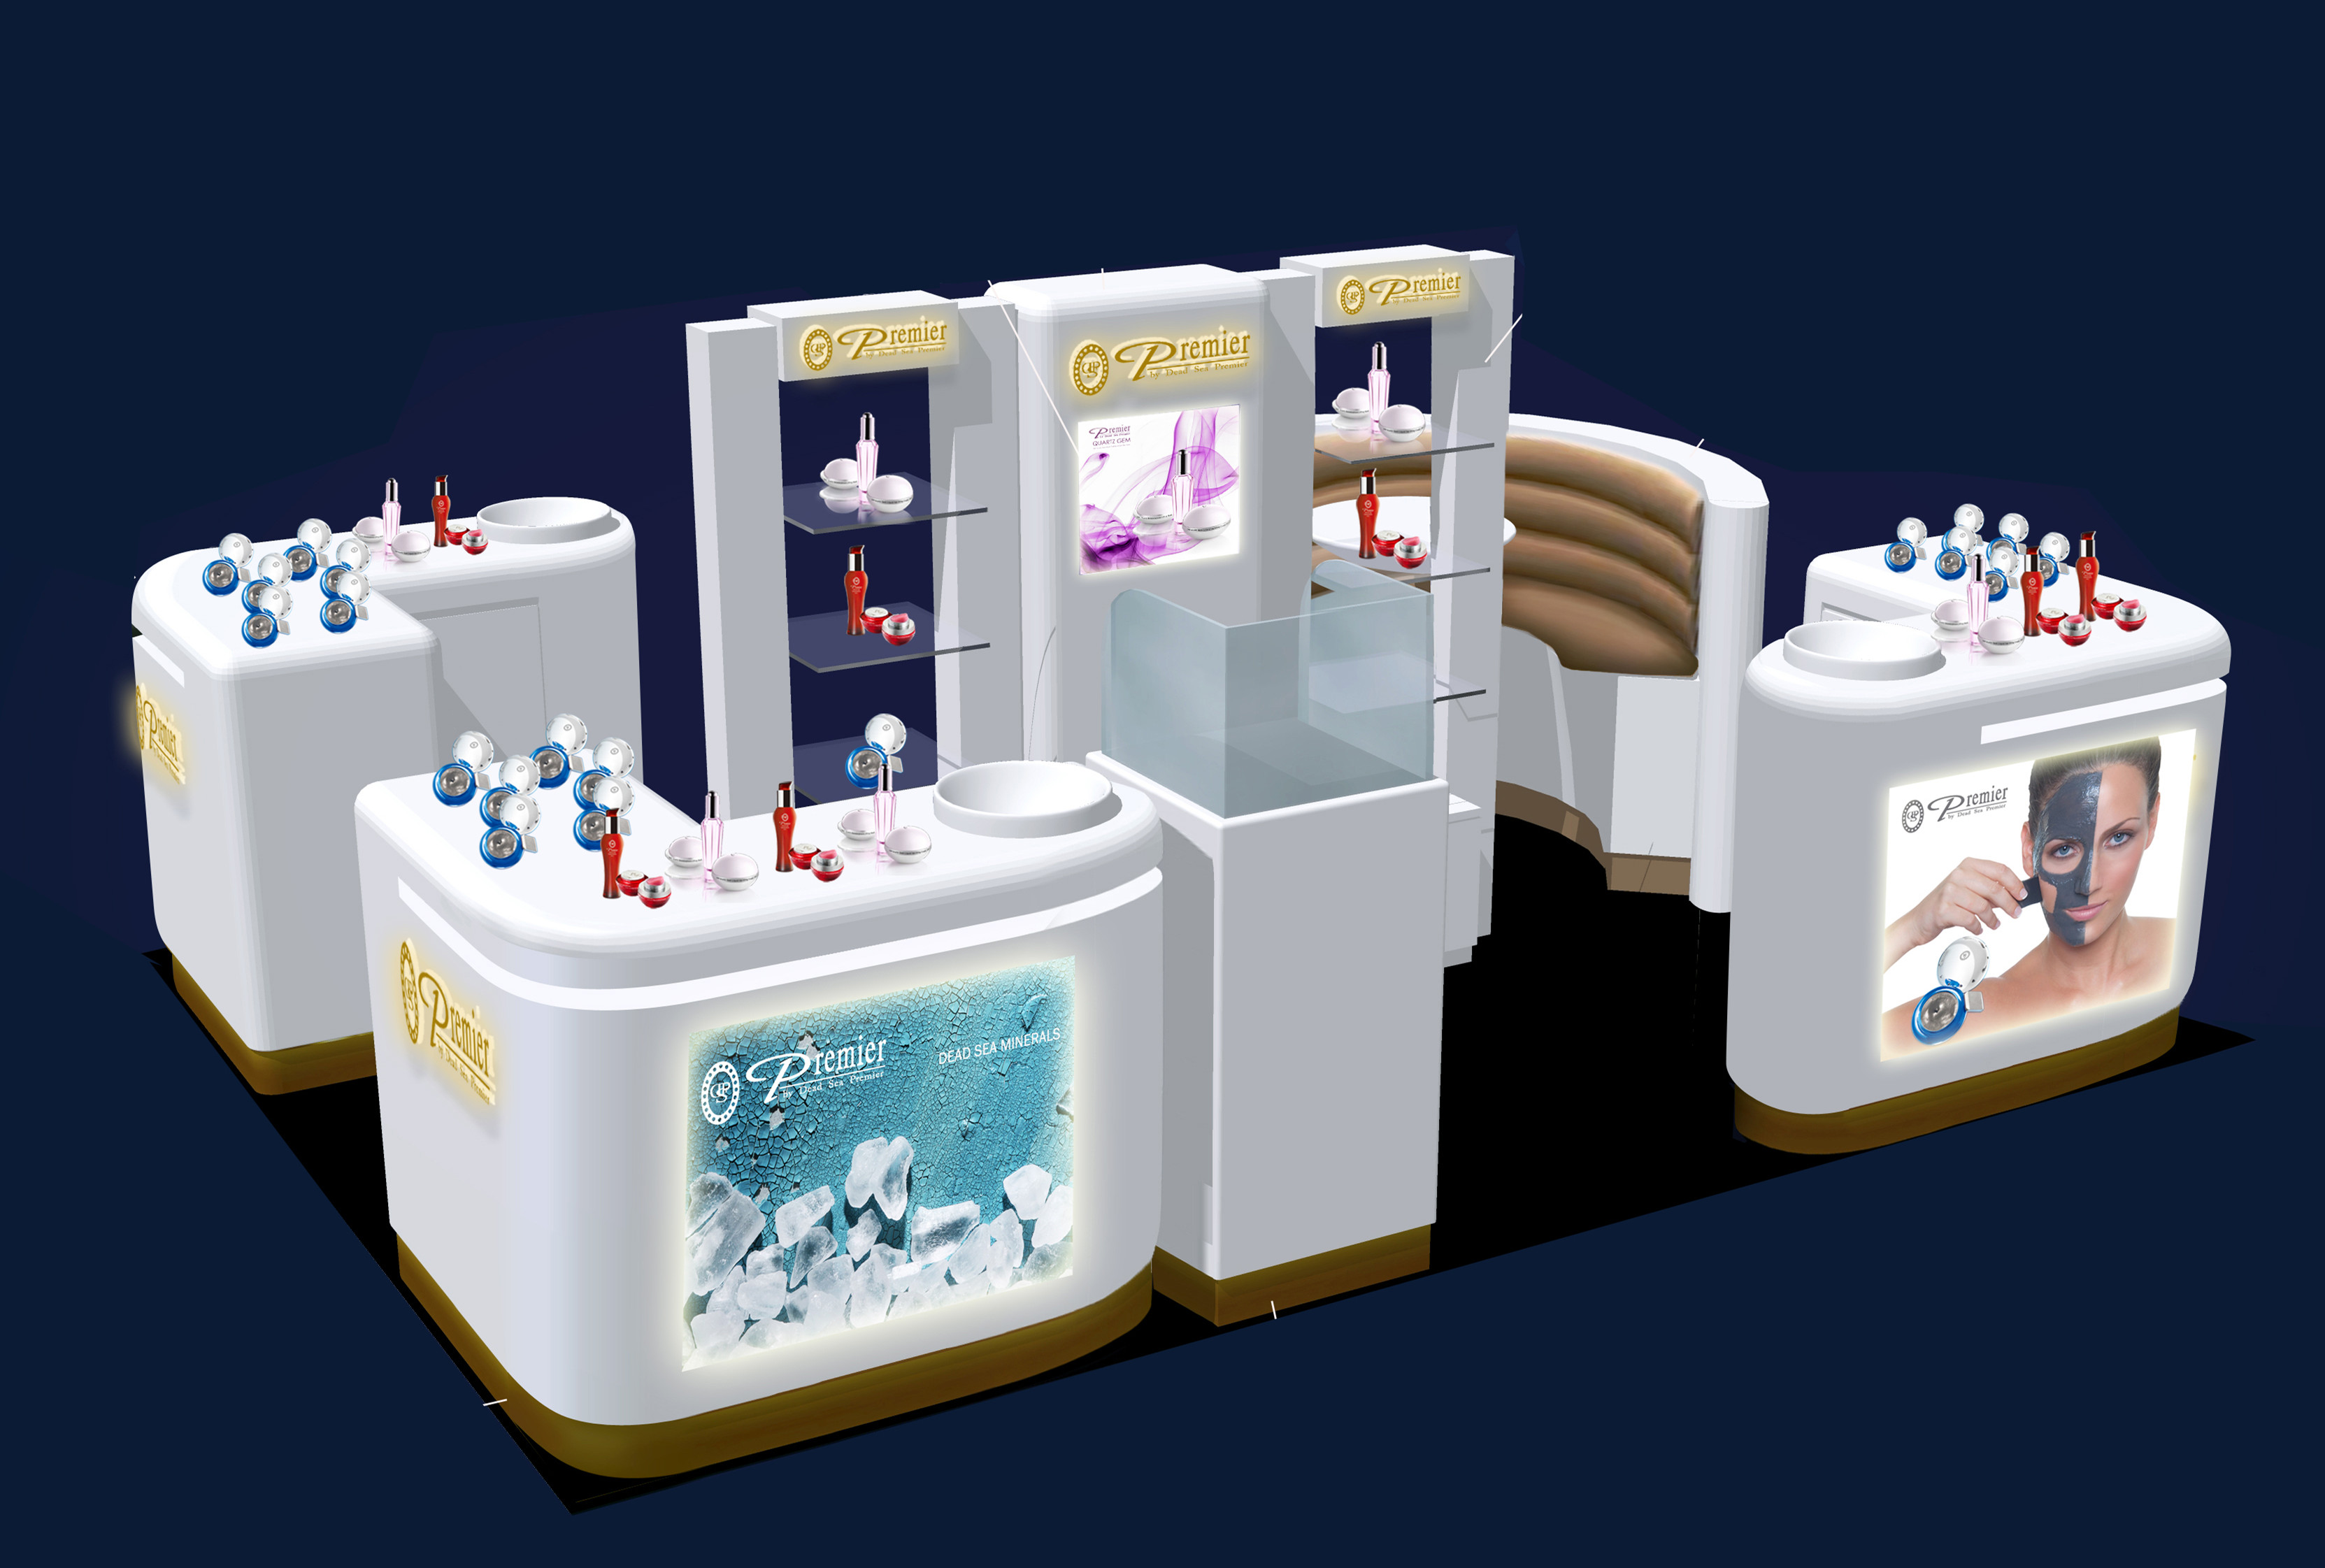 Premier Dead Sea Skin Care Mall kiosk